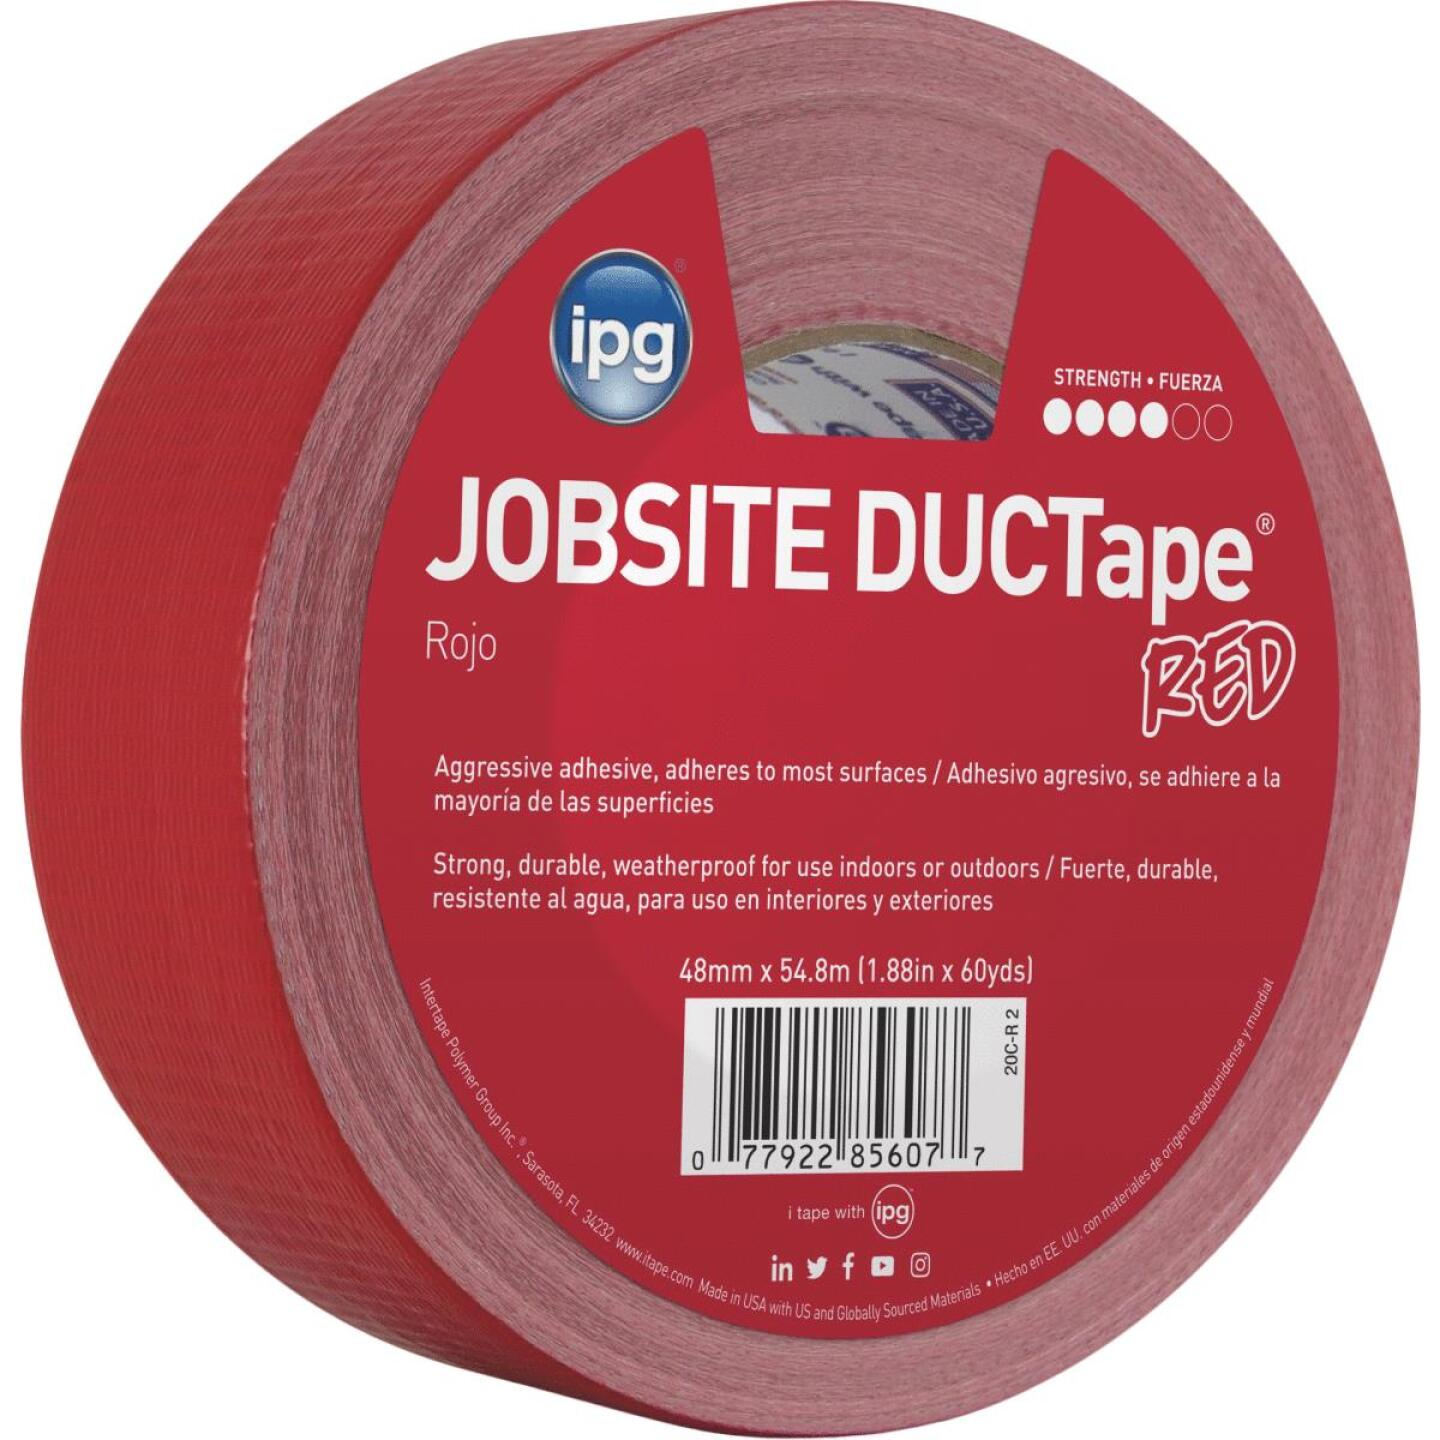 Intertape DUCTape 1.88 In. x 60 Yd. General Purpose Duct Tape, Red Image 1